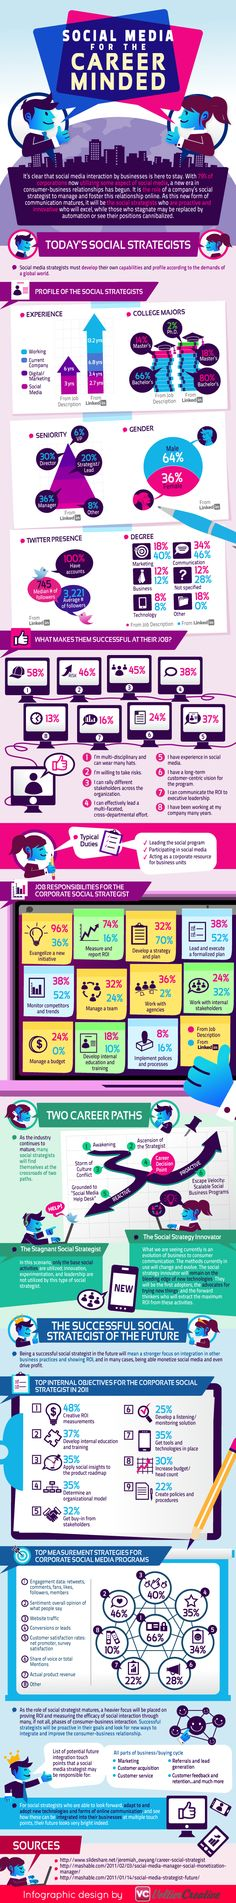 What Does It Take To Be a Social Strategist? #Infographic via #BornToBeSocial